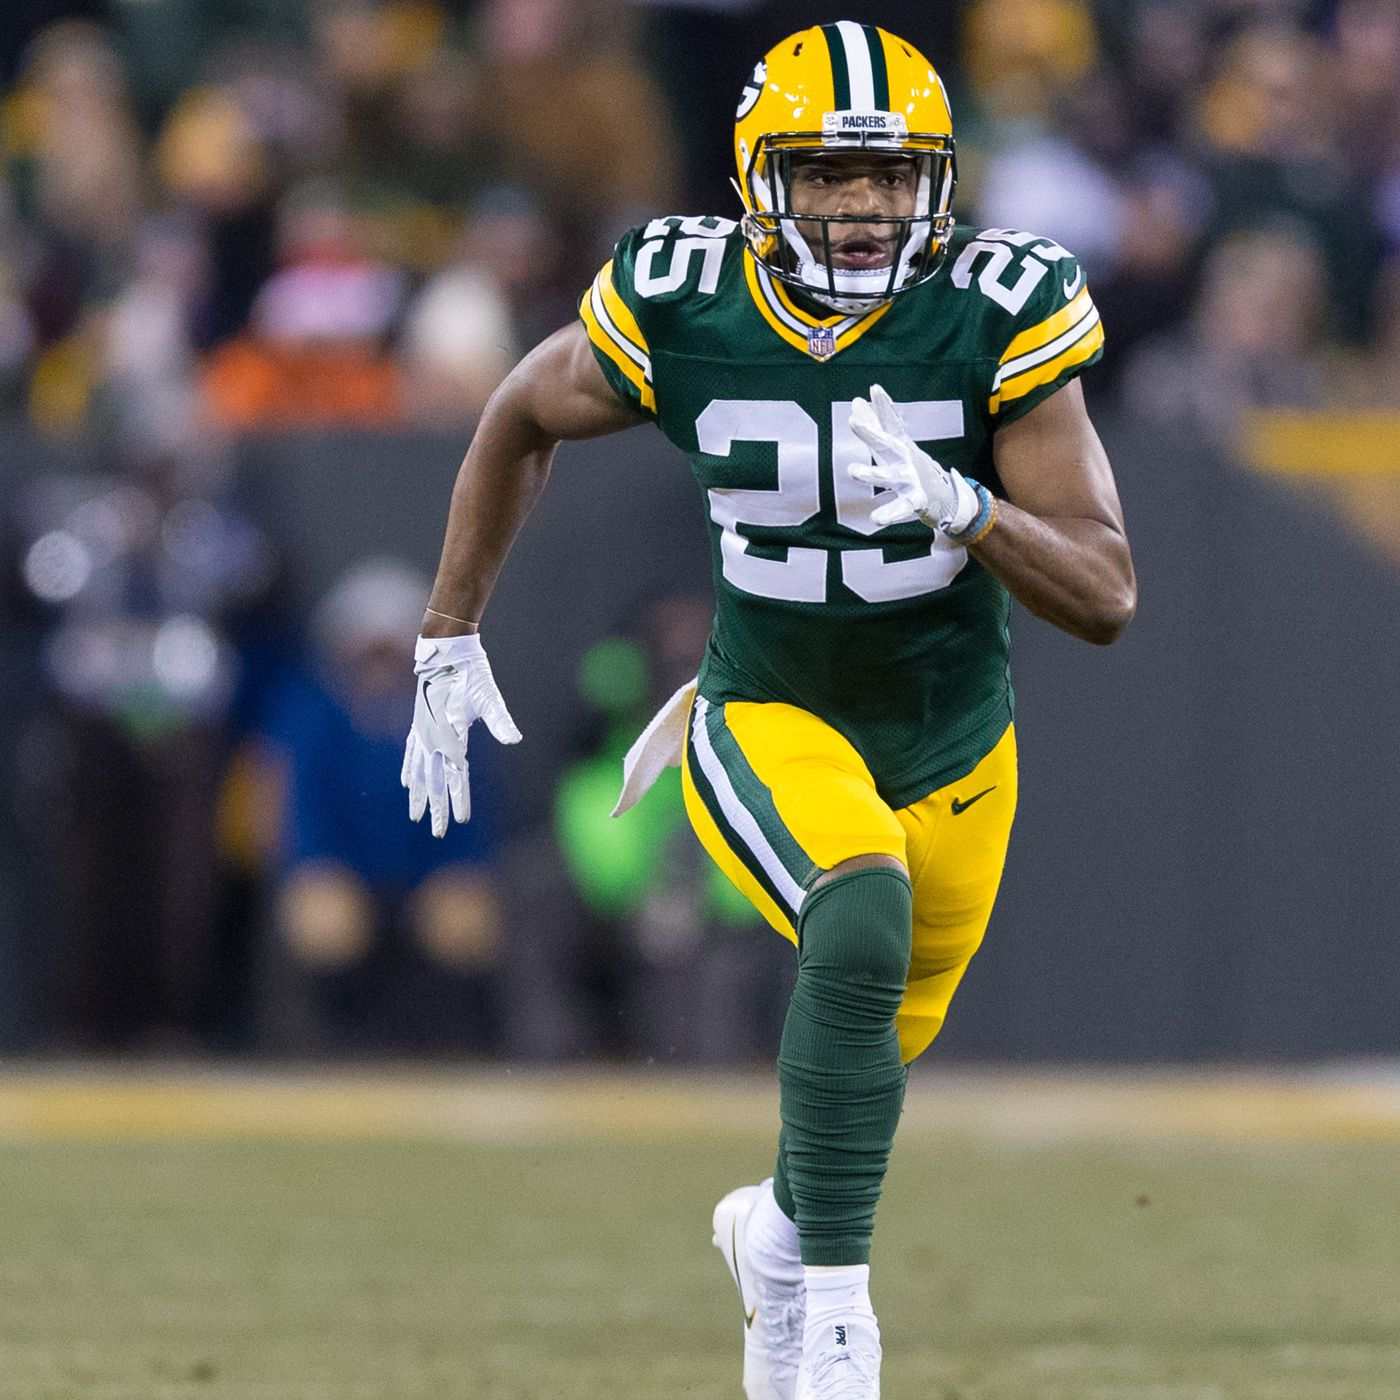 reputable site 6a404 04d4f Packers 2018 roster prediction: Whitehead & Evans will do ...